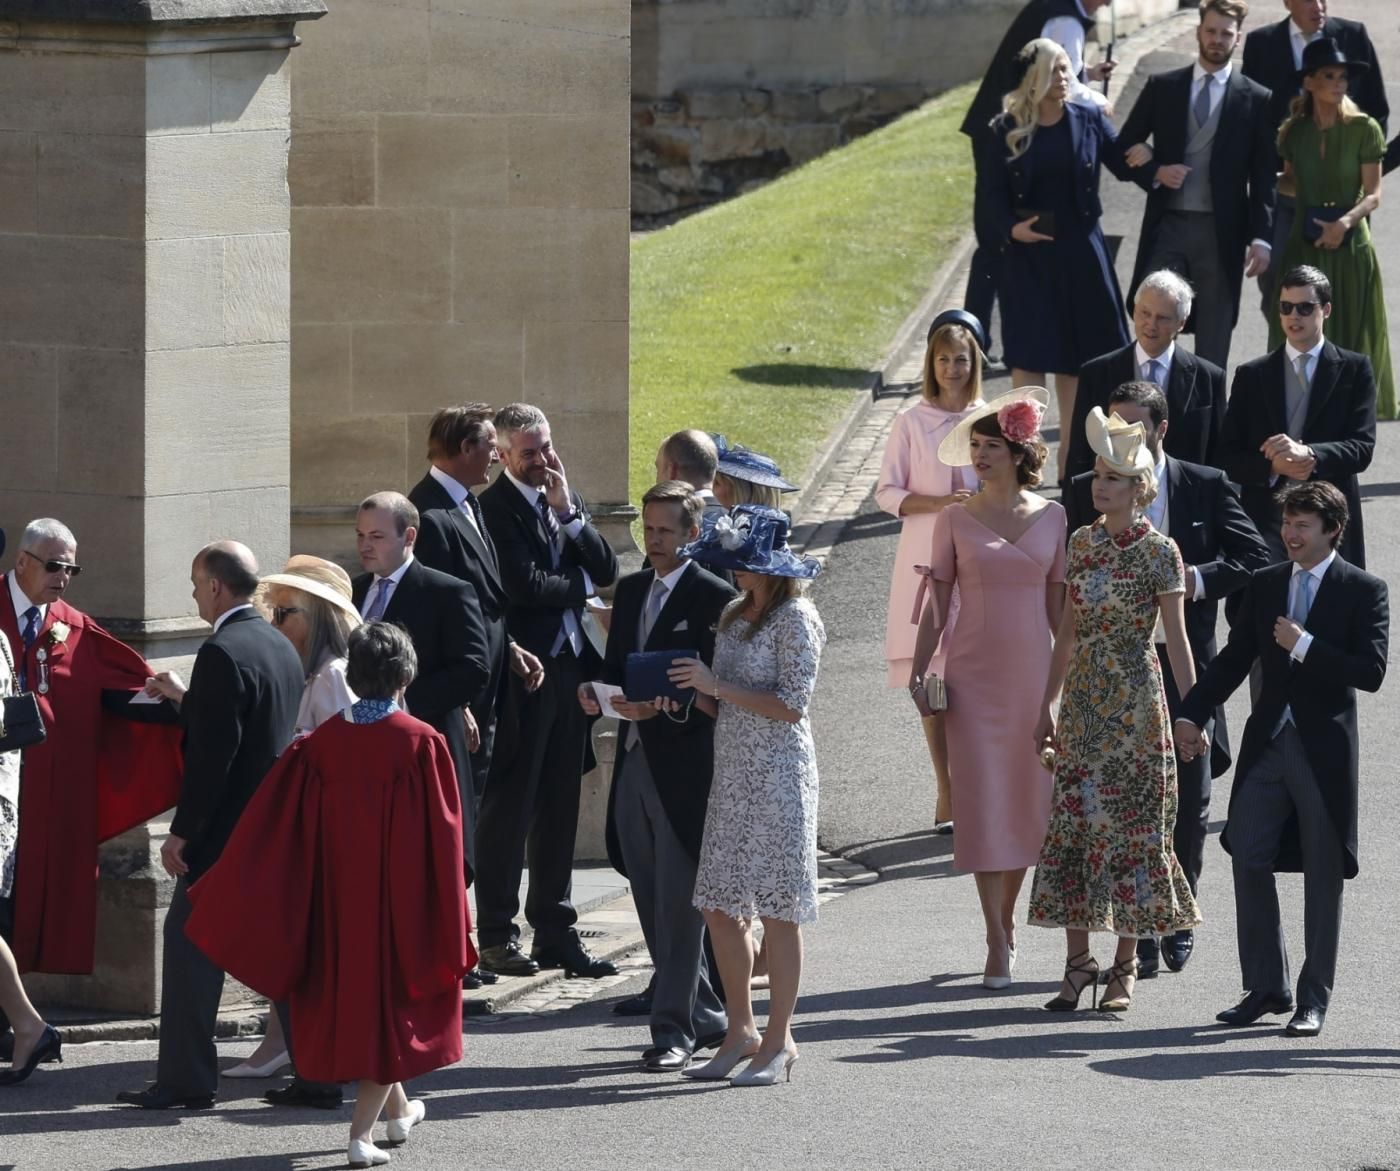 WINDSOR, May 19, 2018 (Xinhua) -- Guests arrive at St. George's Chapel in Windsor Castle for the royal wedding of Prince Harry and his bride Meghan Markle in Windsor, Britain, on May 19, 2018. (Xinhua/Han Yan/IANS) by .